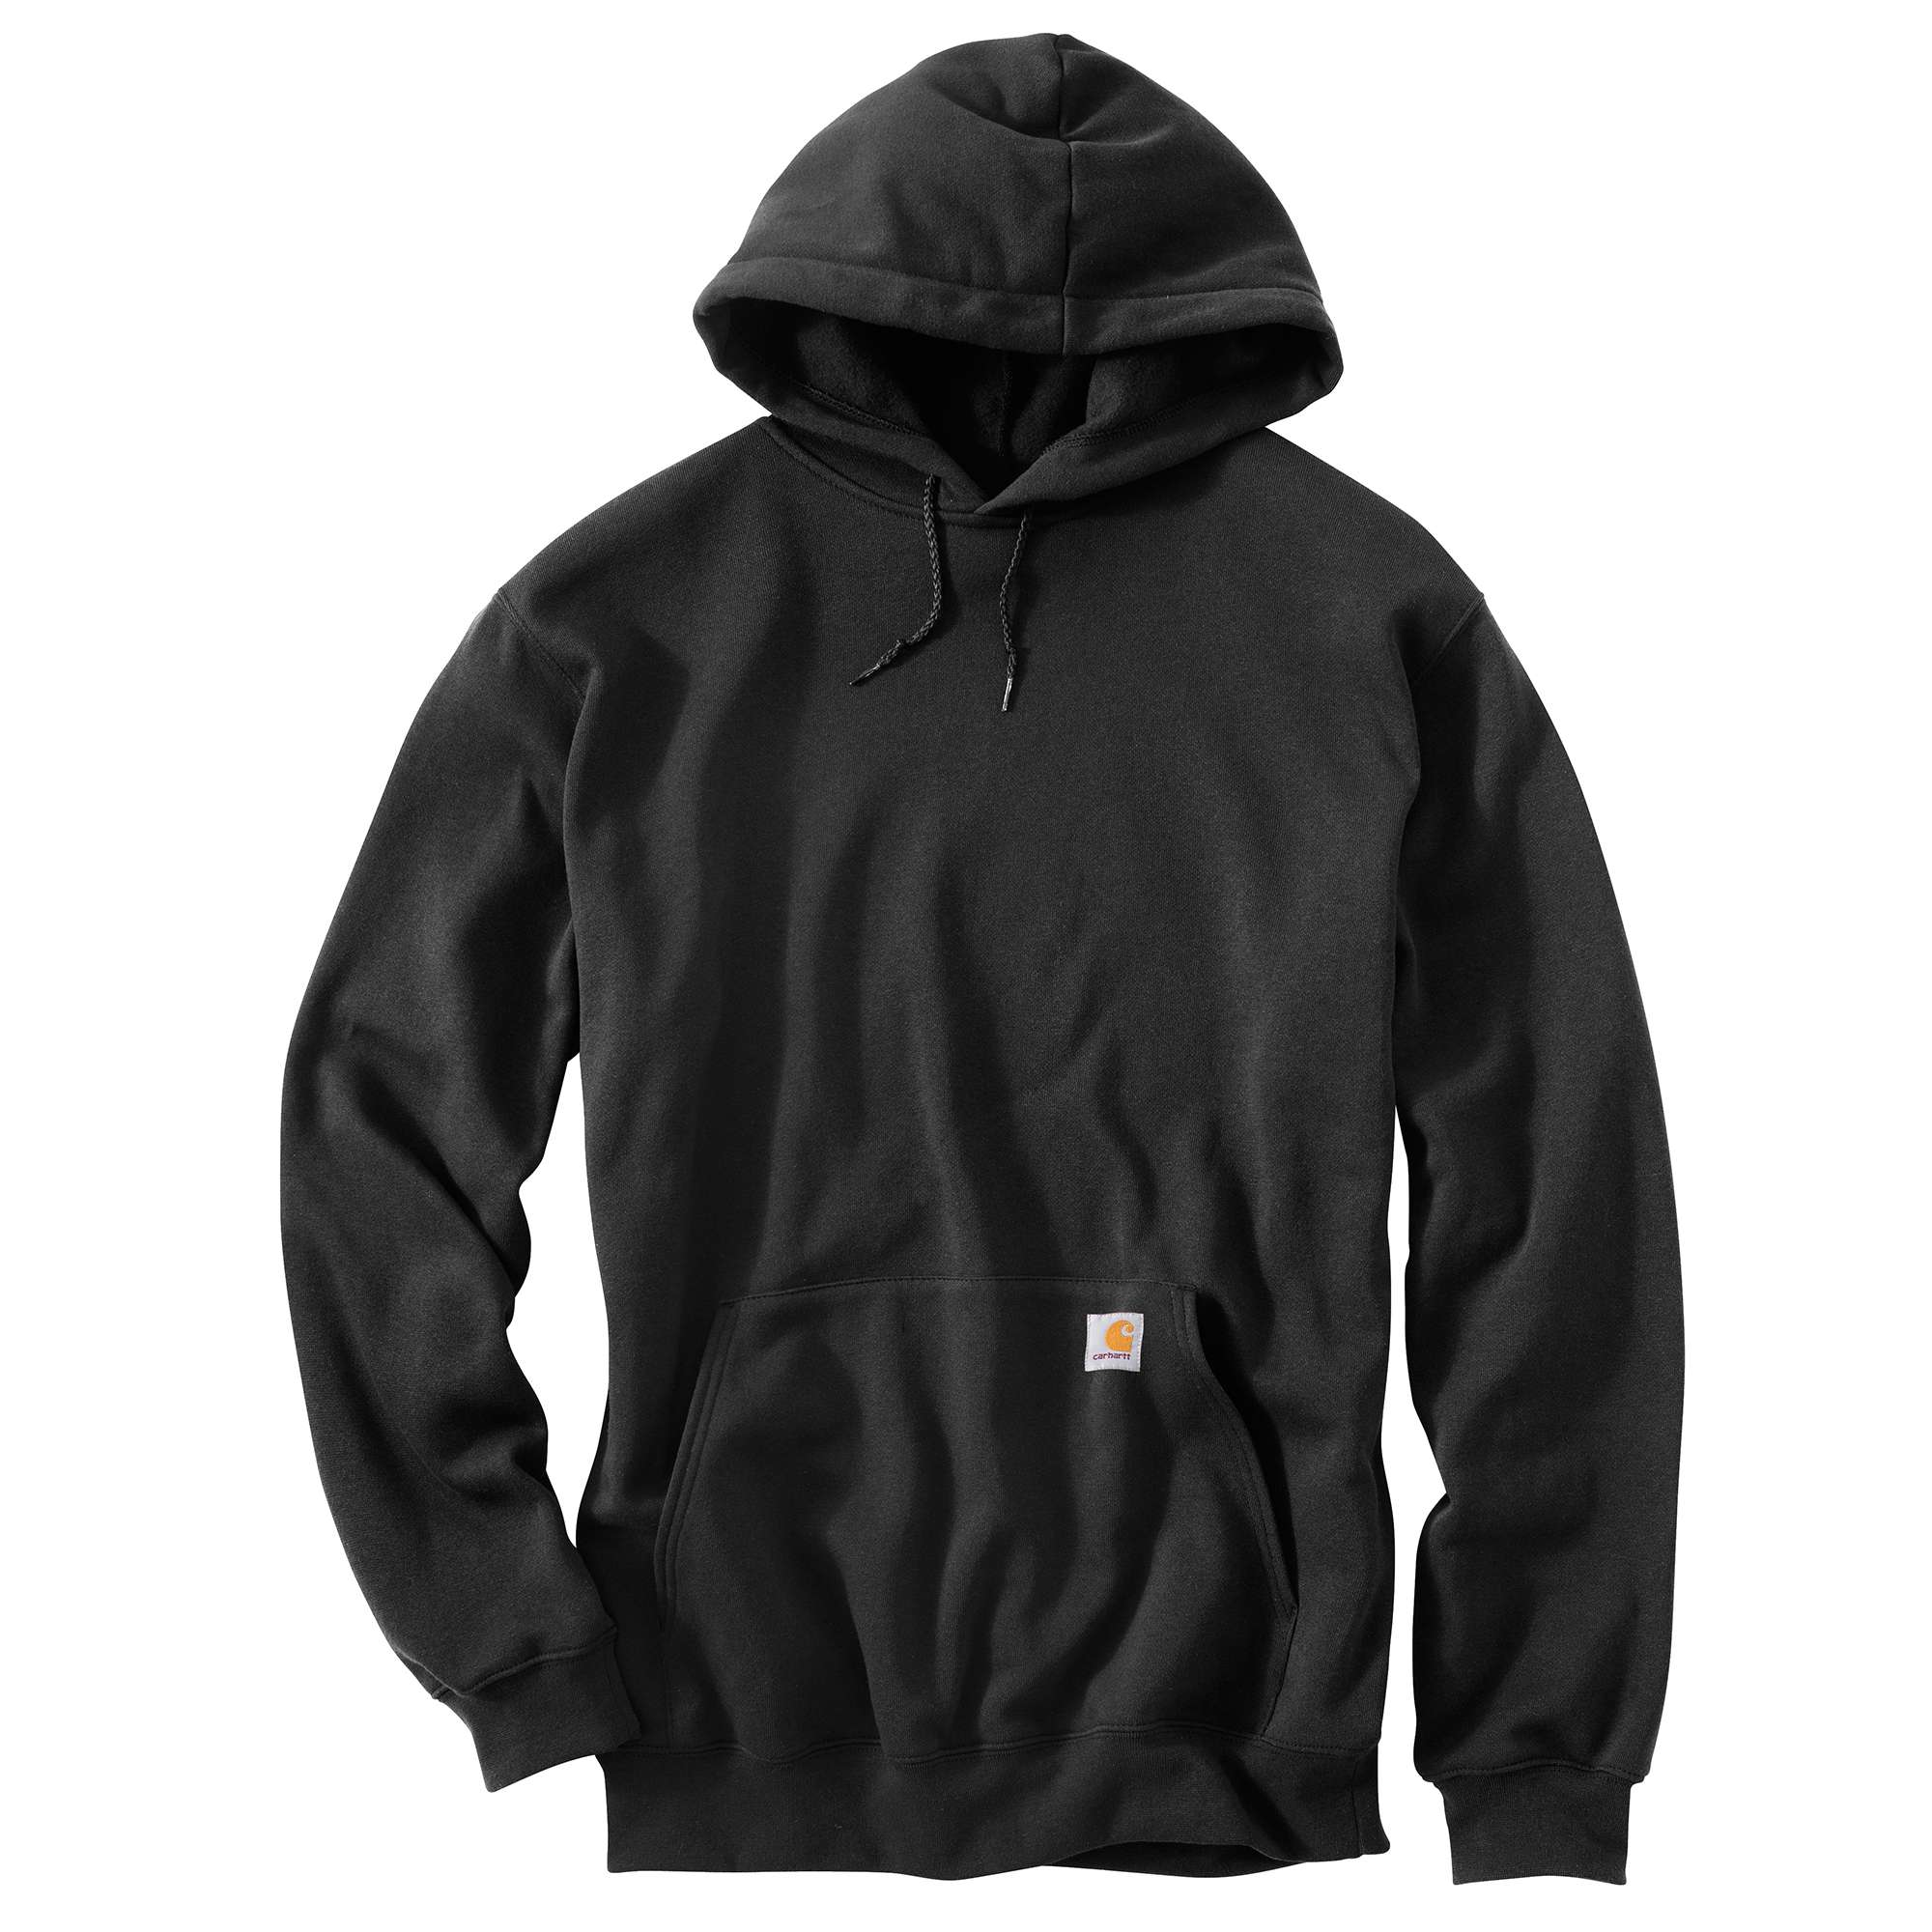 MEN'S HOODED MIDWEIGHT SWEATSHIRT